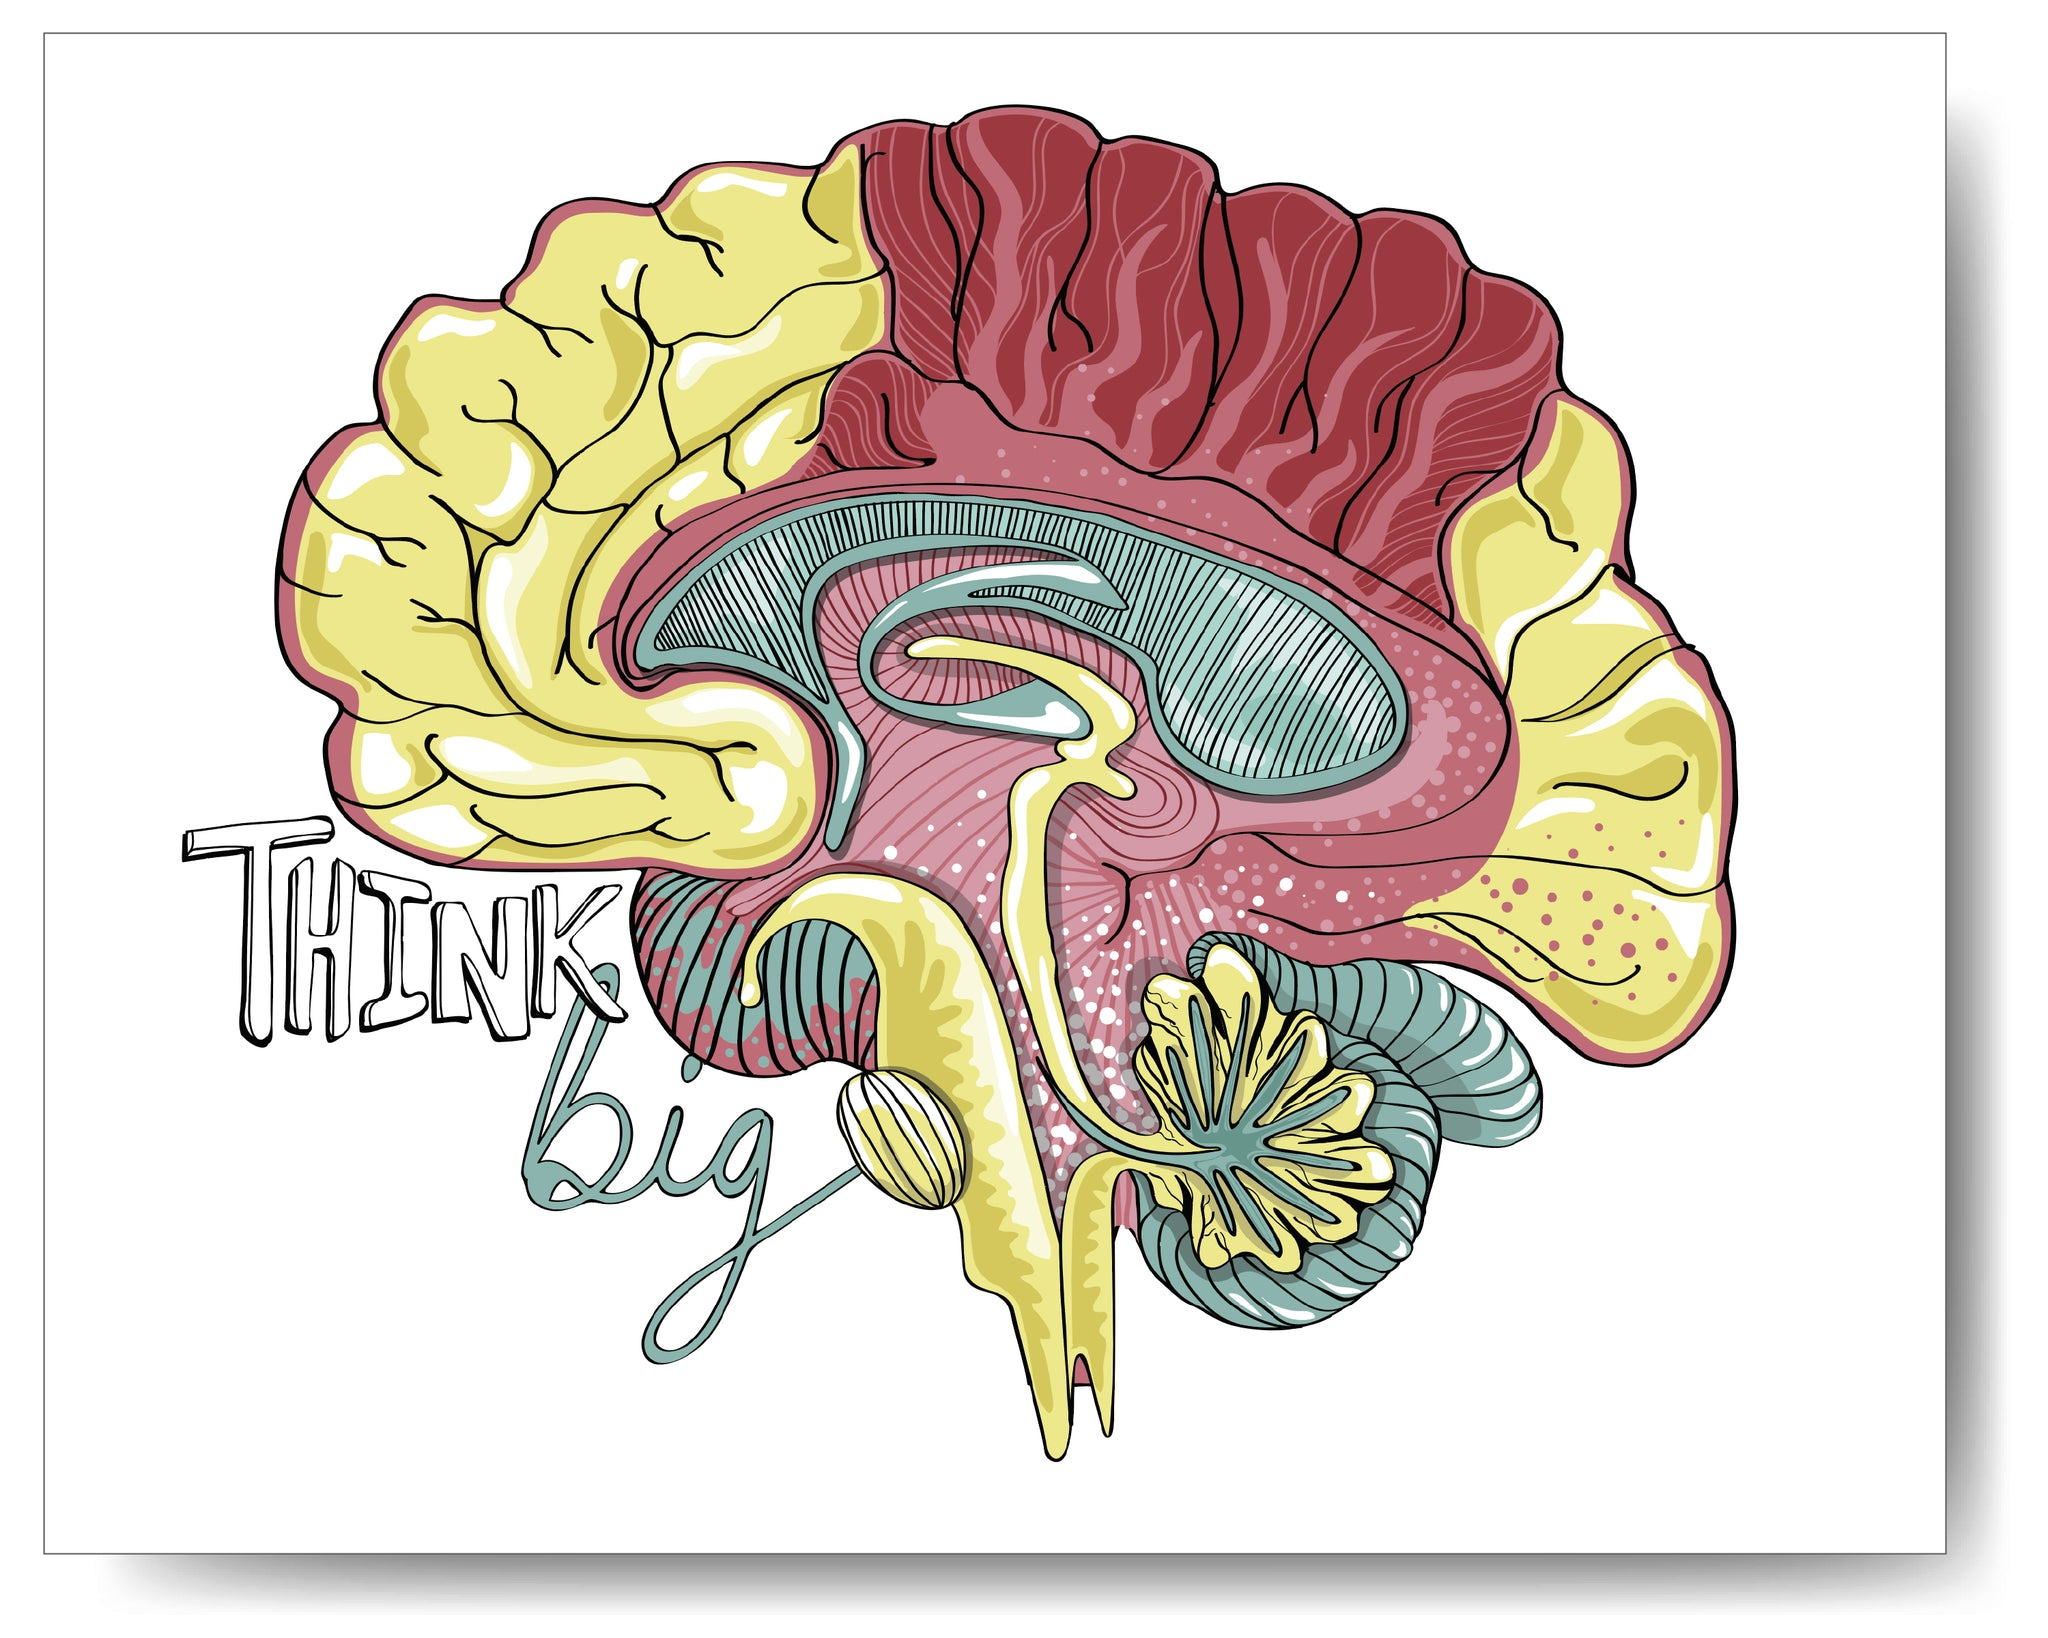 Think Big Brain - 8x10